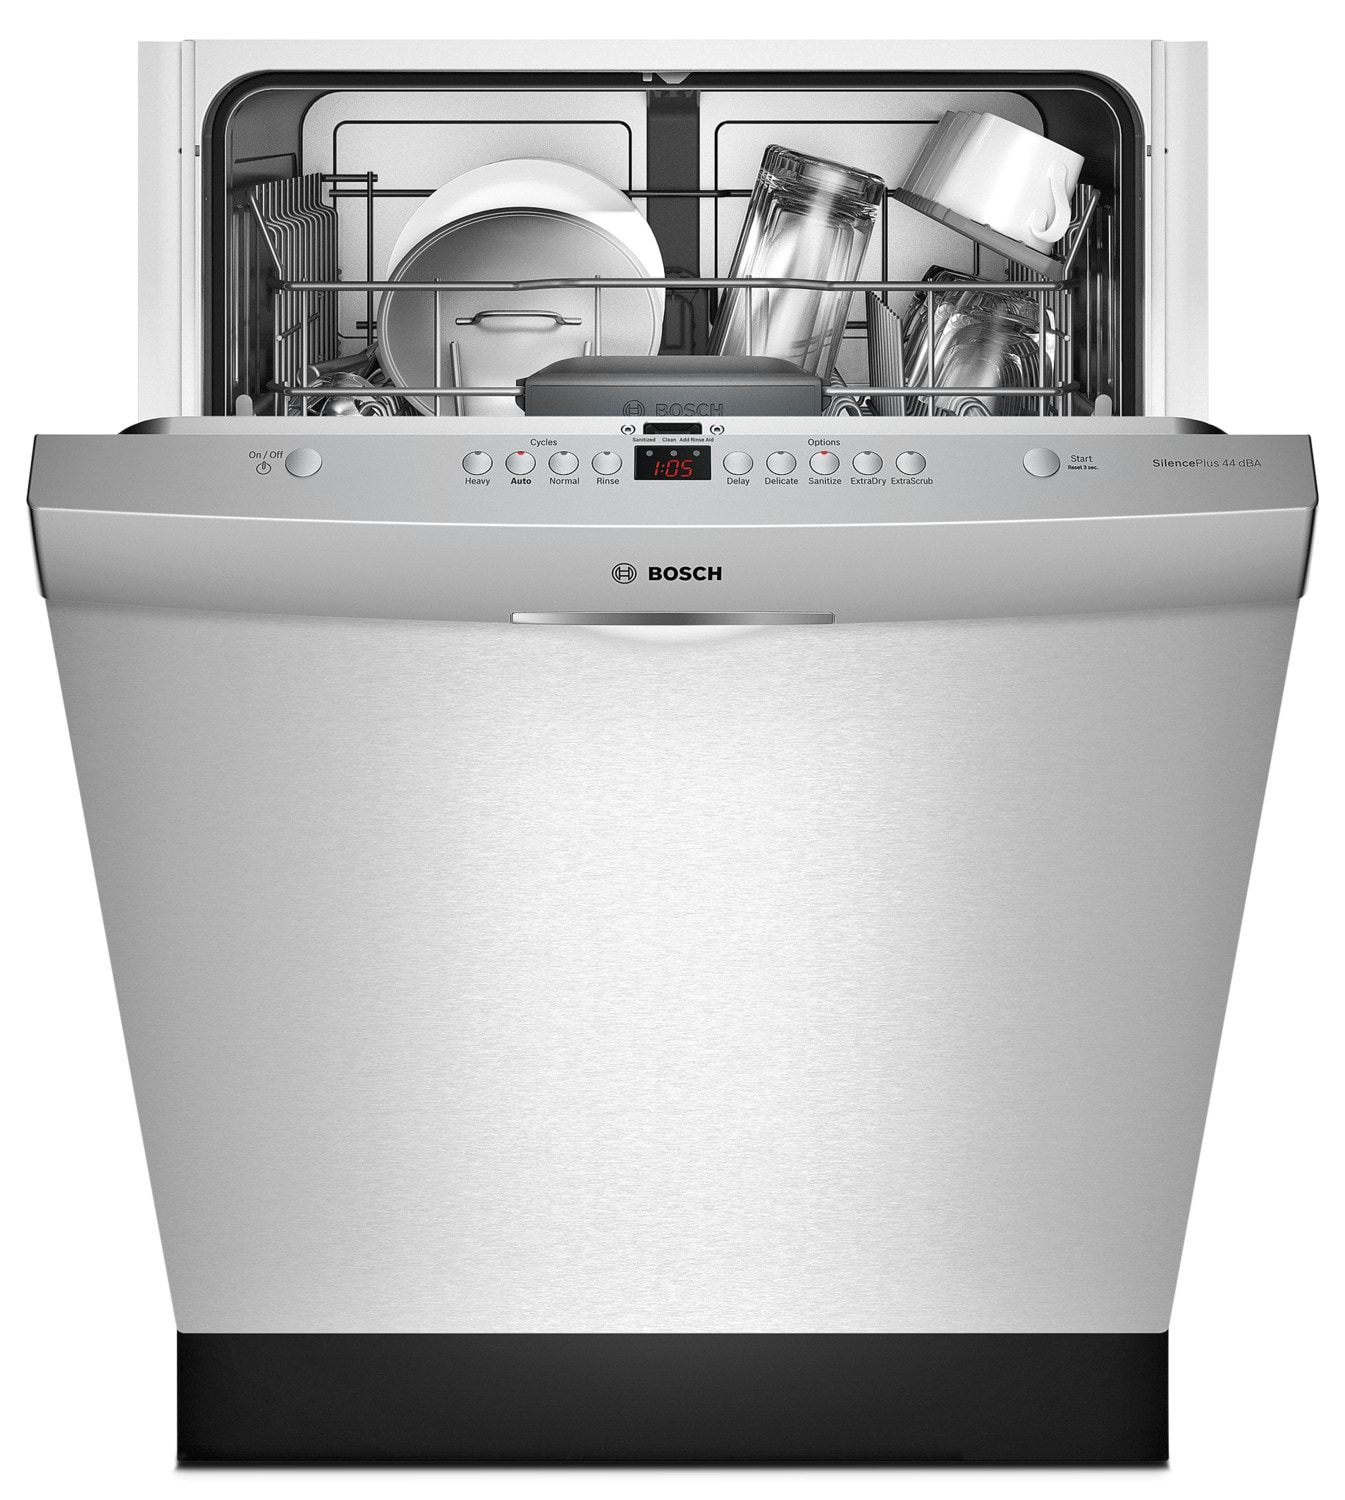 Bosch 300 Series Scoop Handle Built-In Dishwasher with Third Rack – SHS63VL5UC